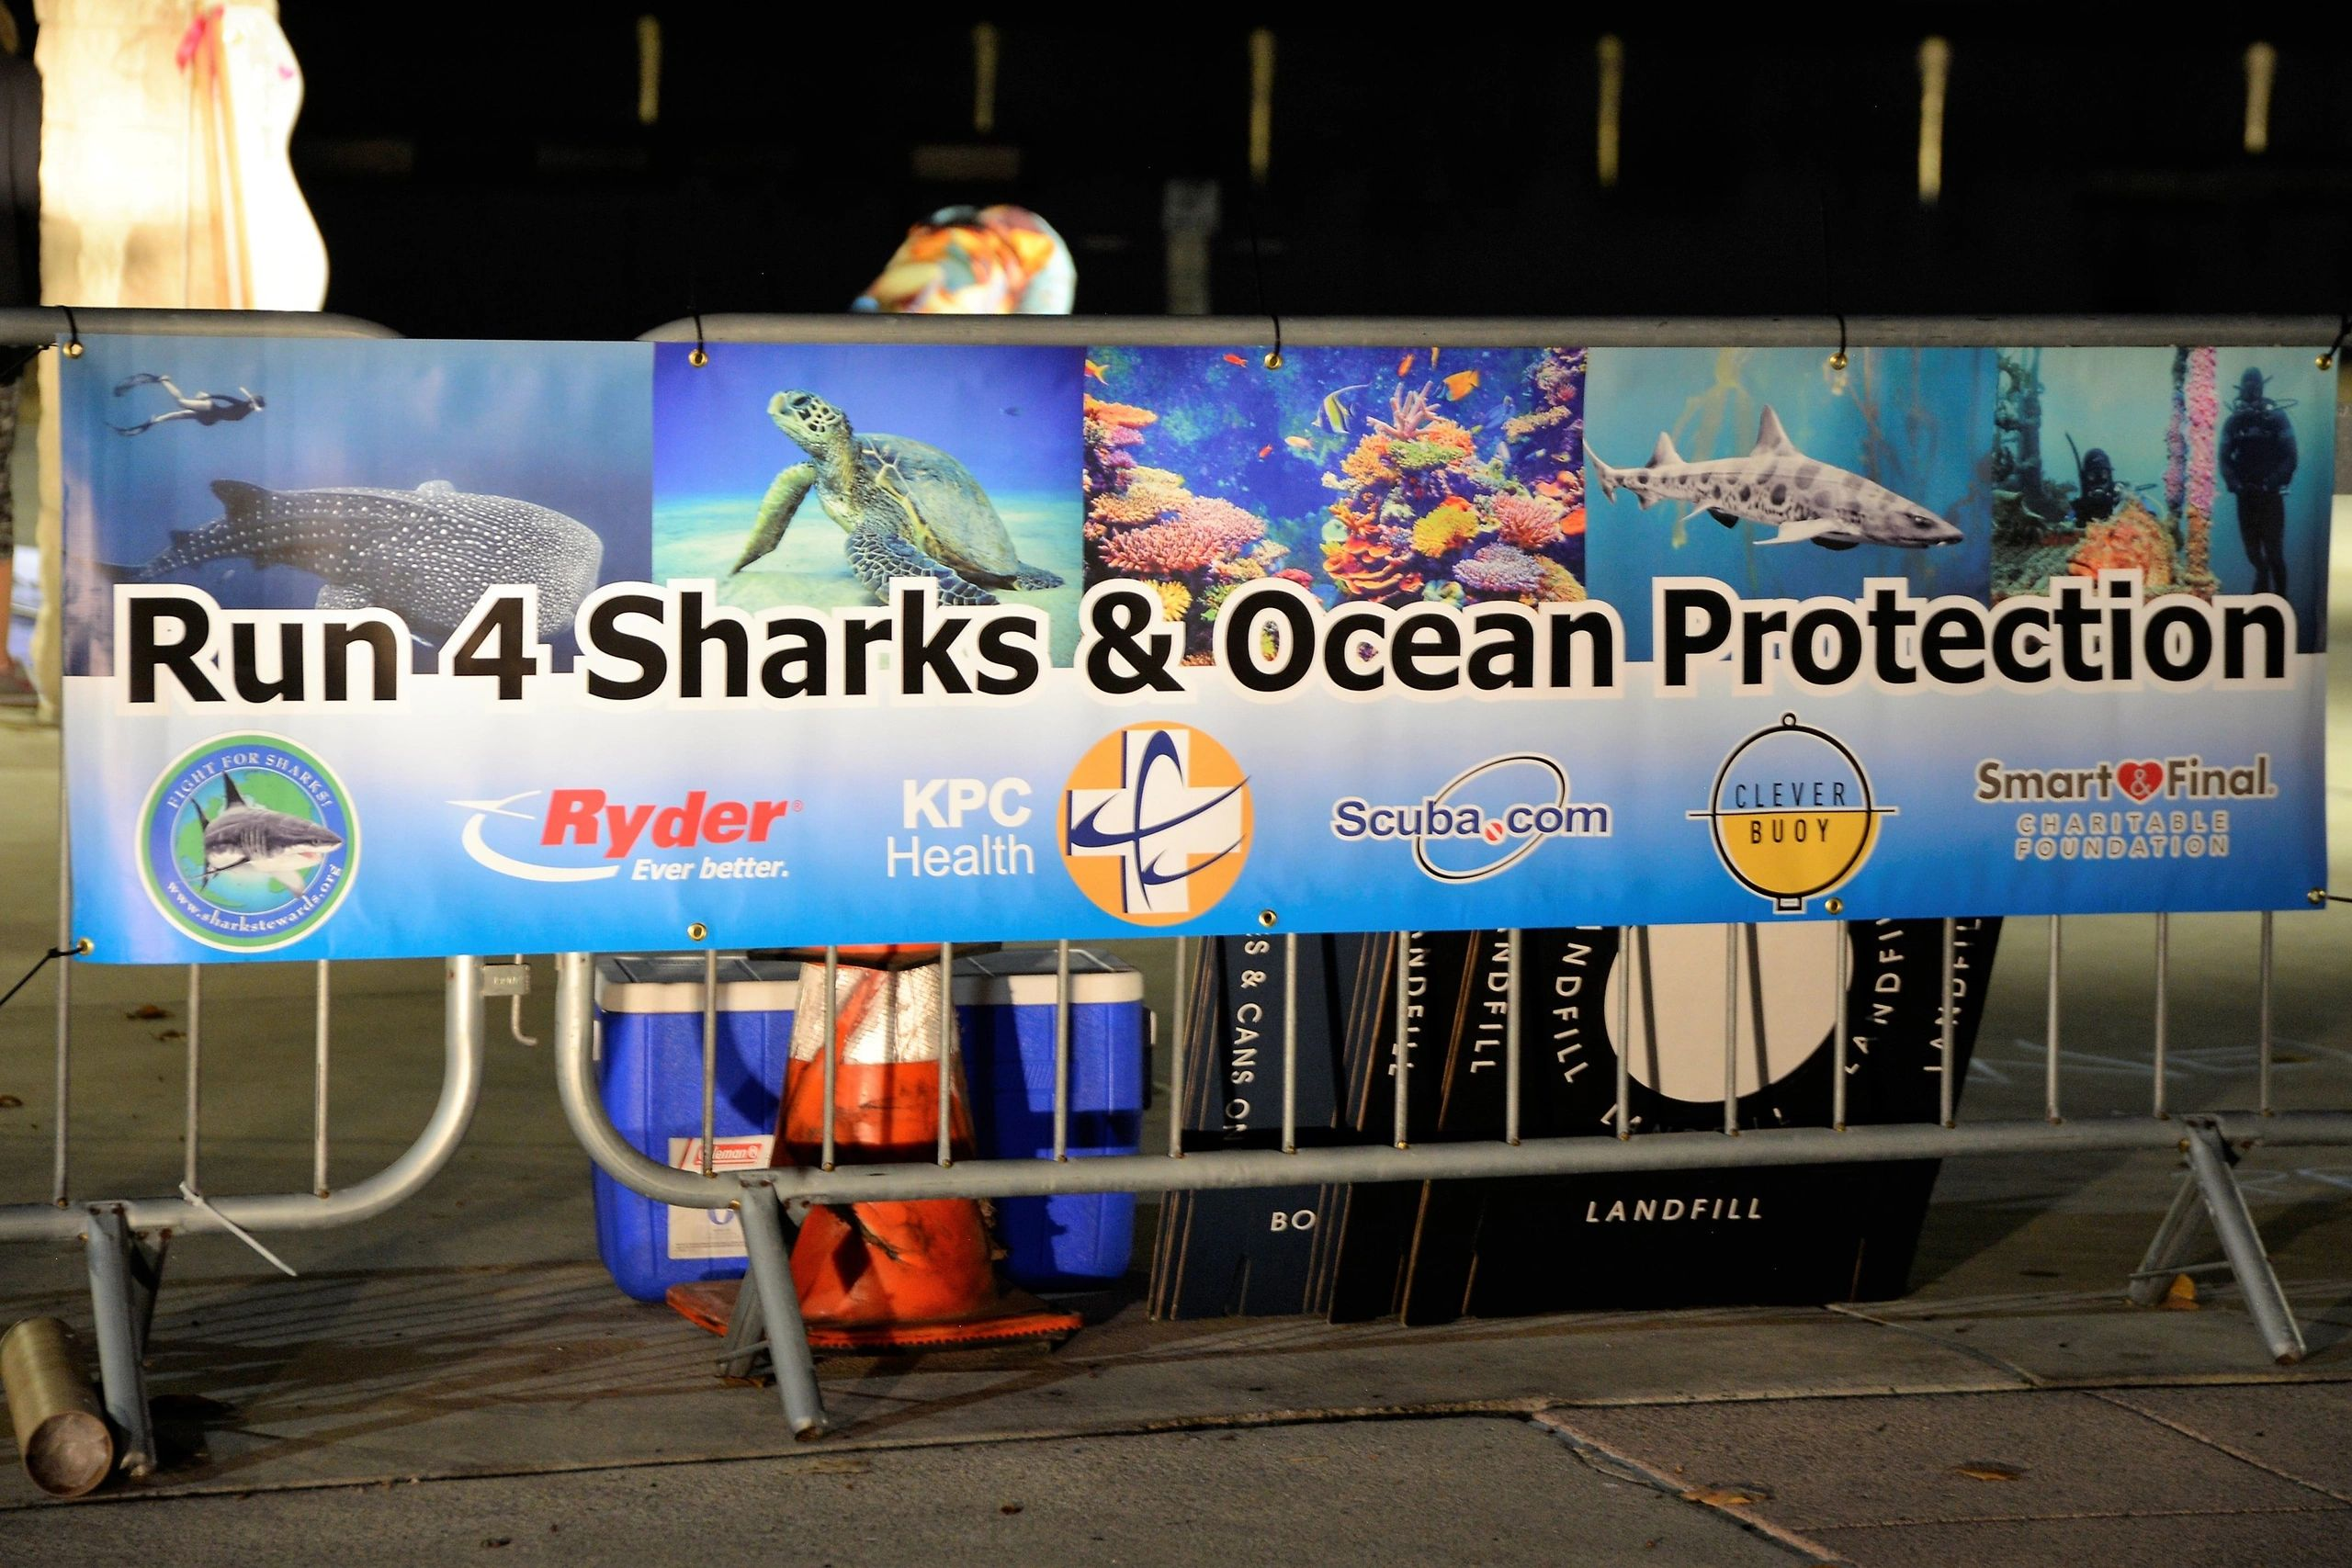 Presented by SoCal Shark Stewards